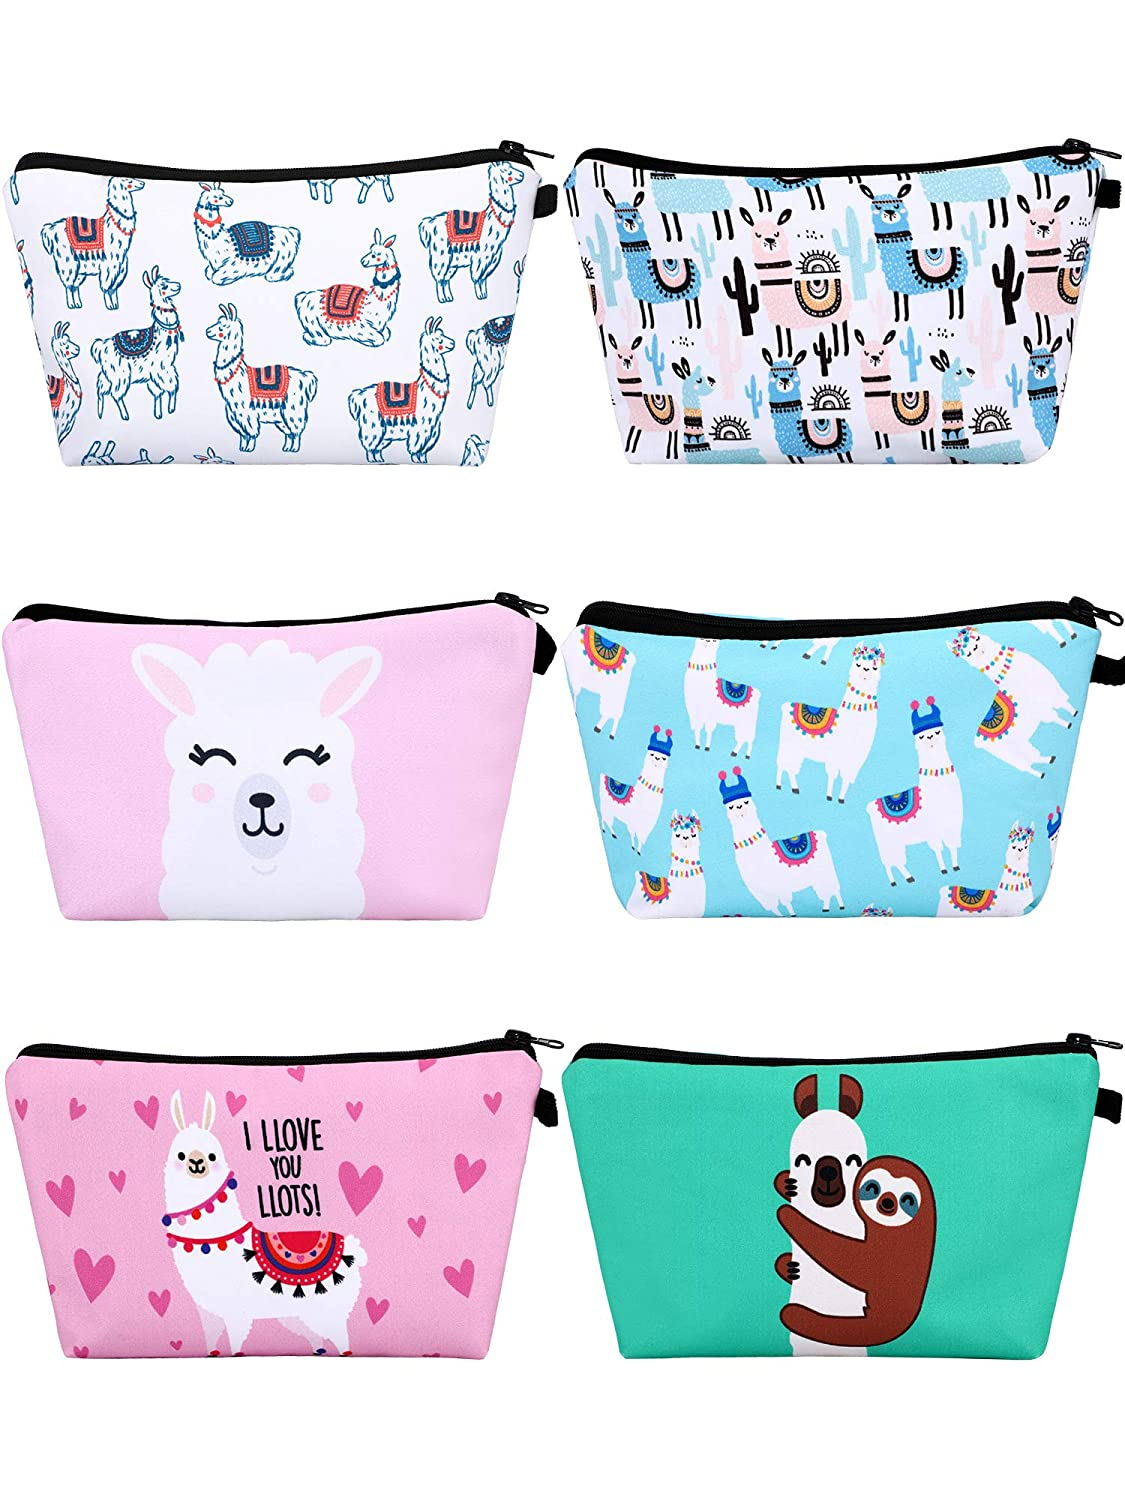 6 Pieces Makeup Bags Llama Makeup Pouch Alpaca Pattern Cosmetic Bags Cartoon Letters Printed Toiletry Travelling Bags for Valentine's Day (Cartoon Design)